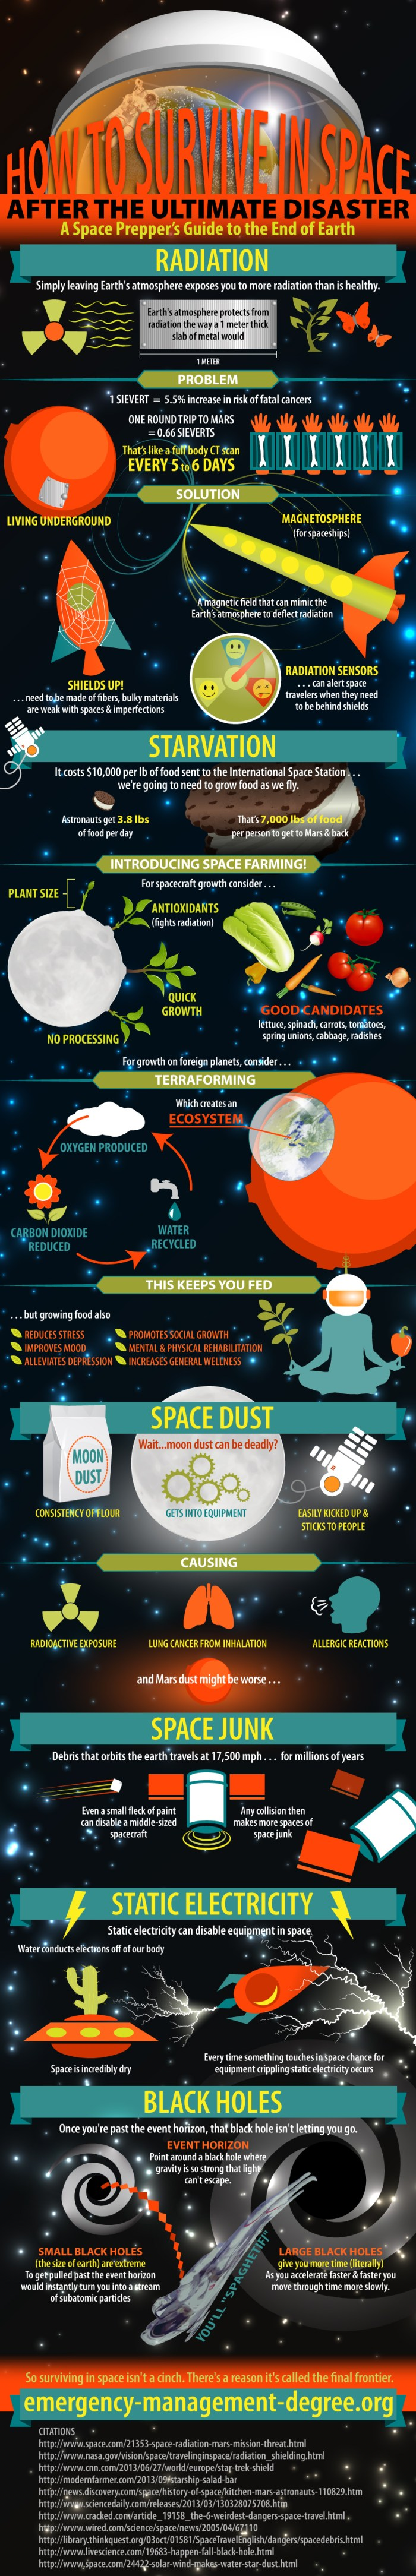 How to Survive in Space